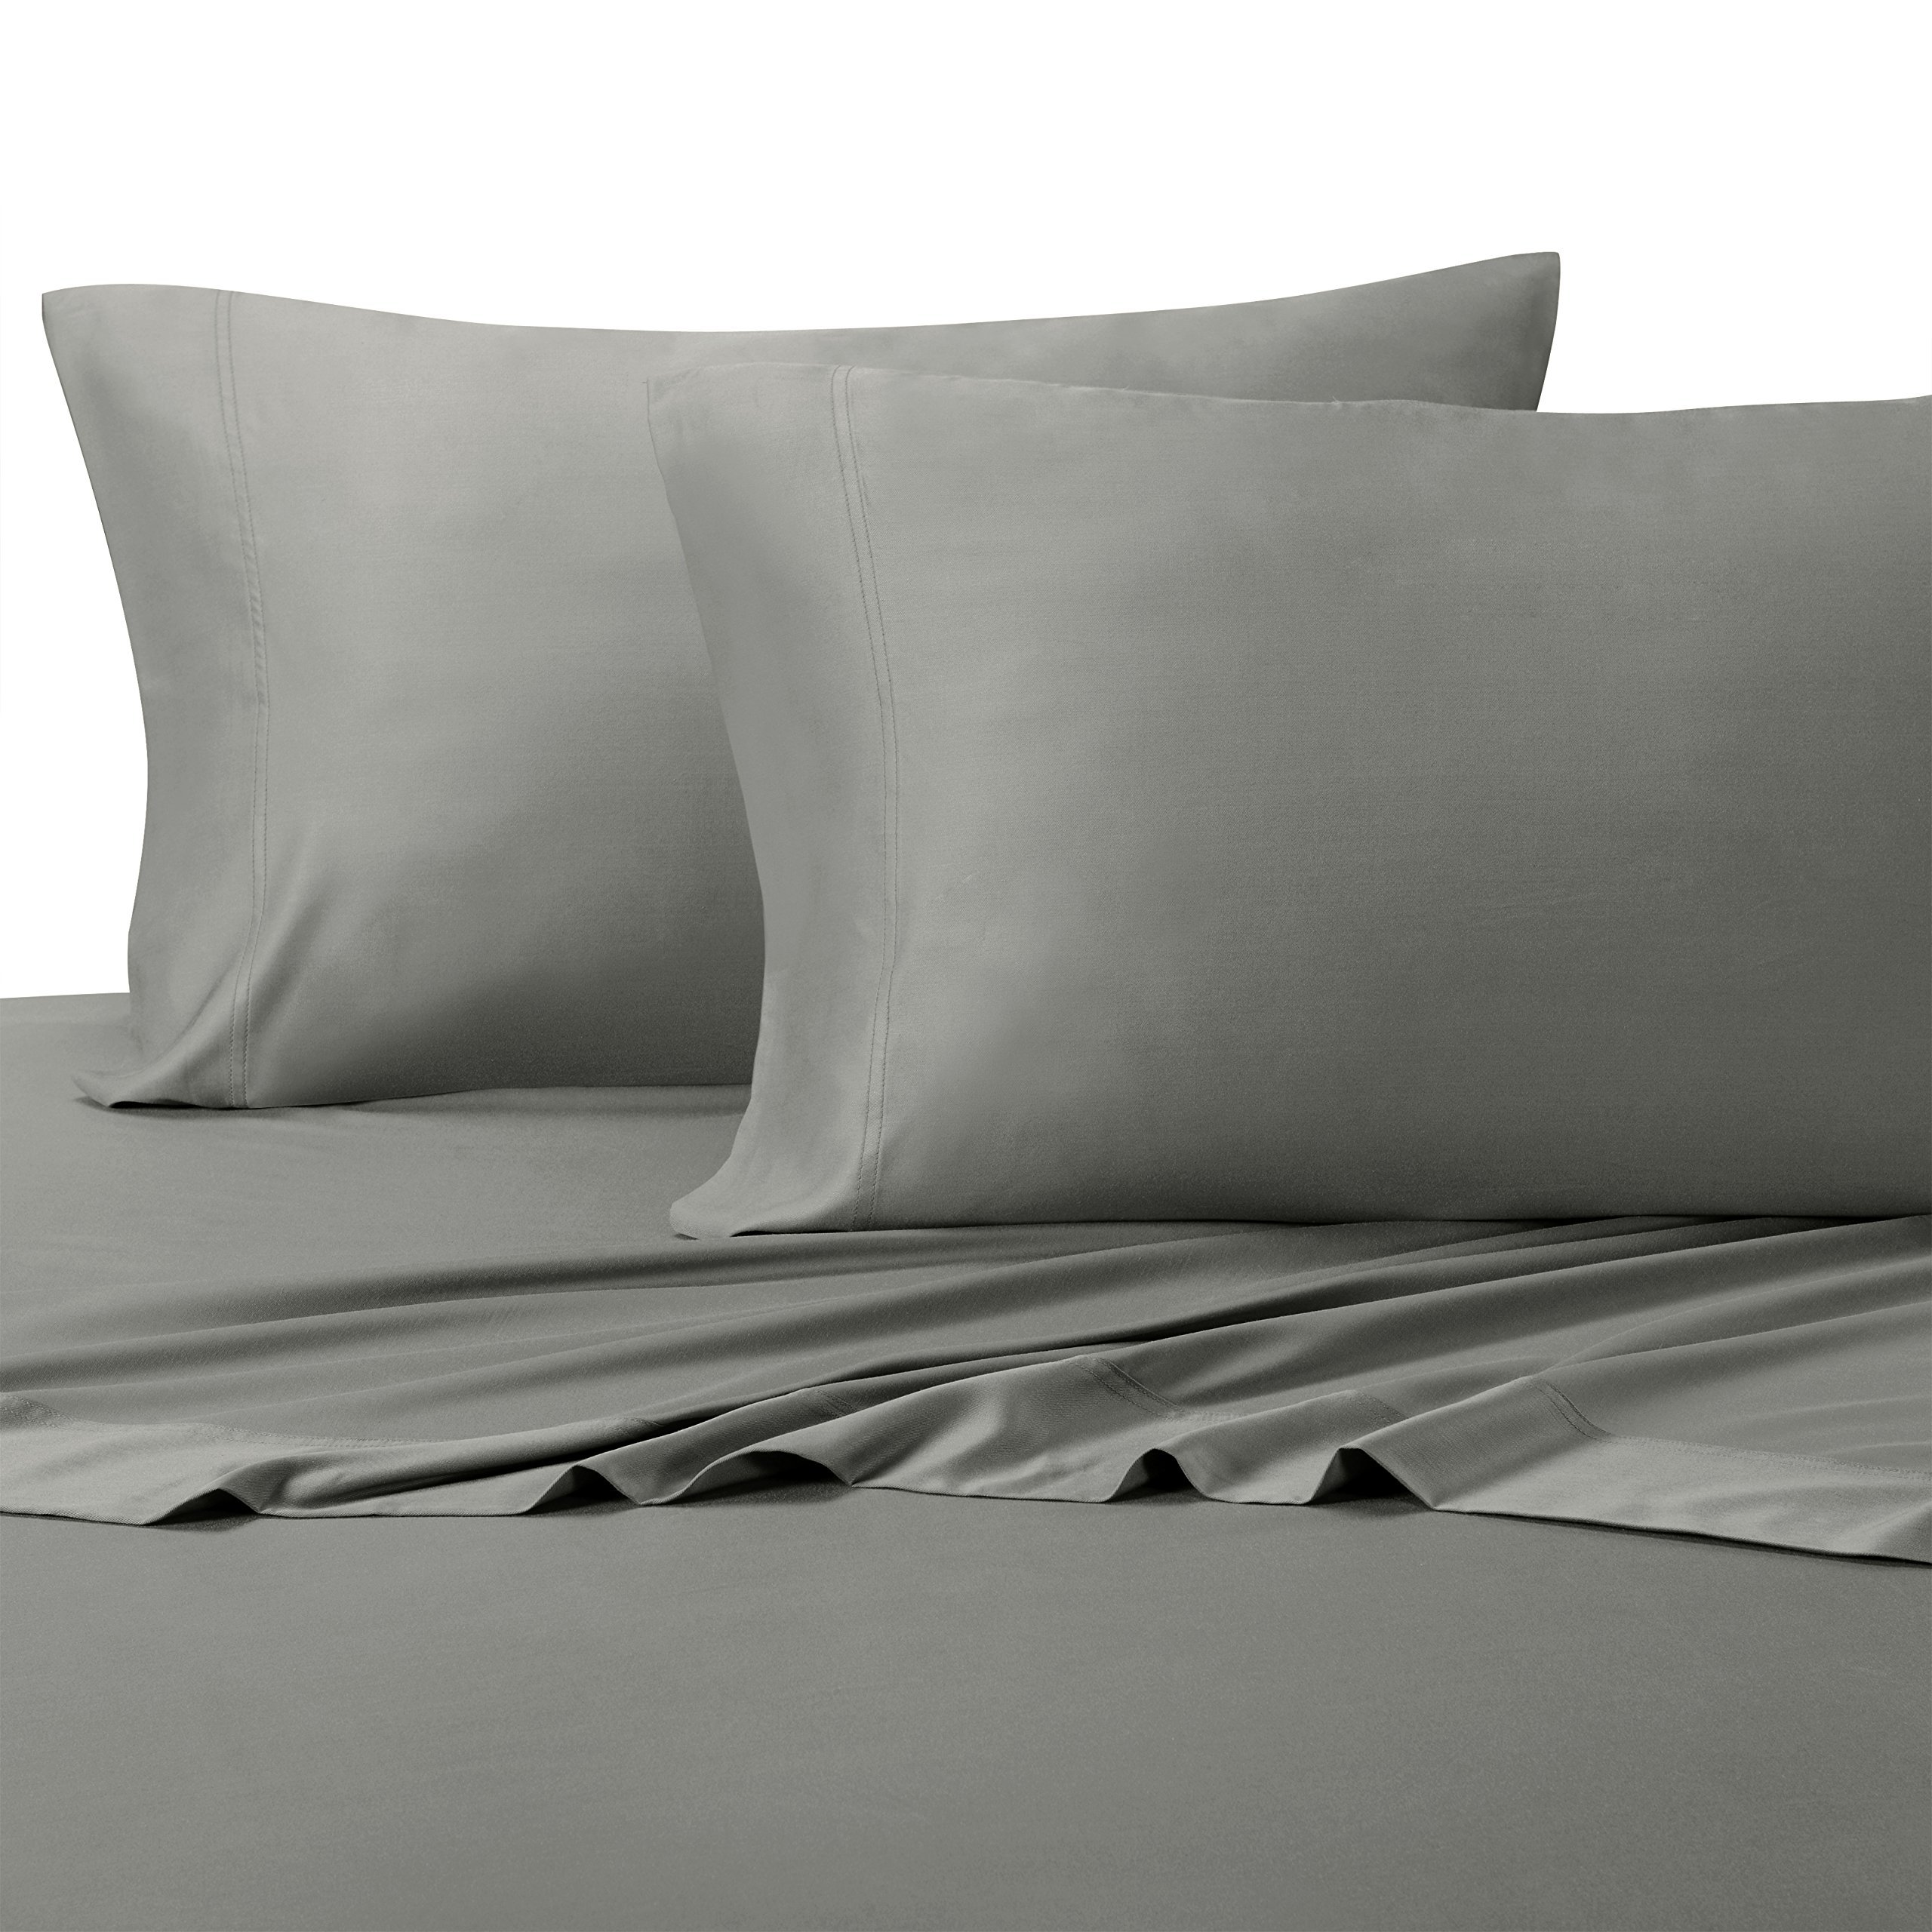 Solid Gray King Size Sheets, 4PC Bed Sheet Set, 100% Cotton, 300 Thread Count, Sateen Solid, Deep Pocket, by Royal Hotel